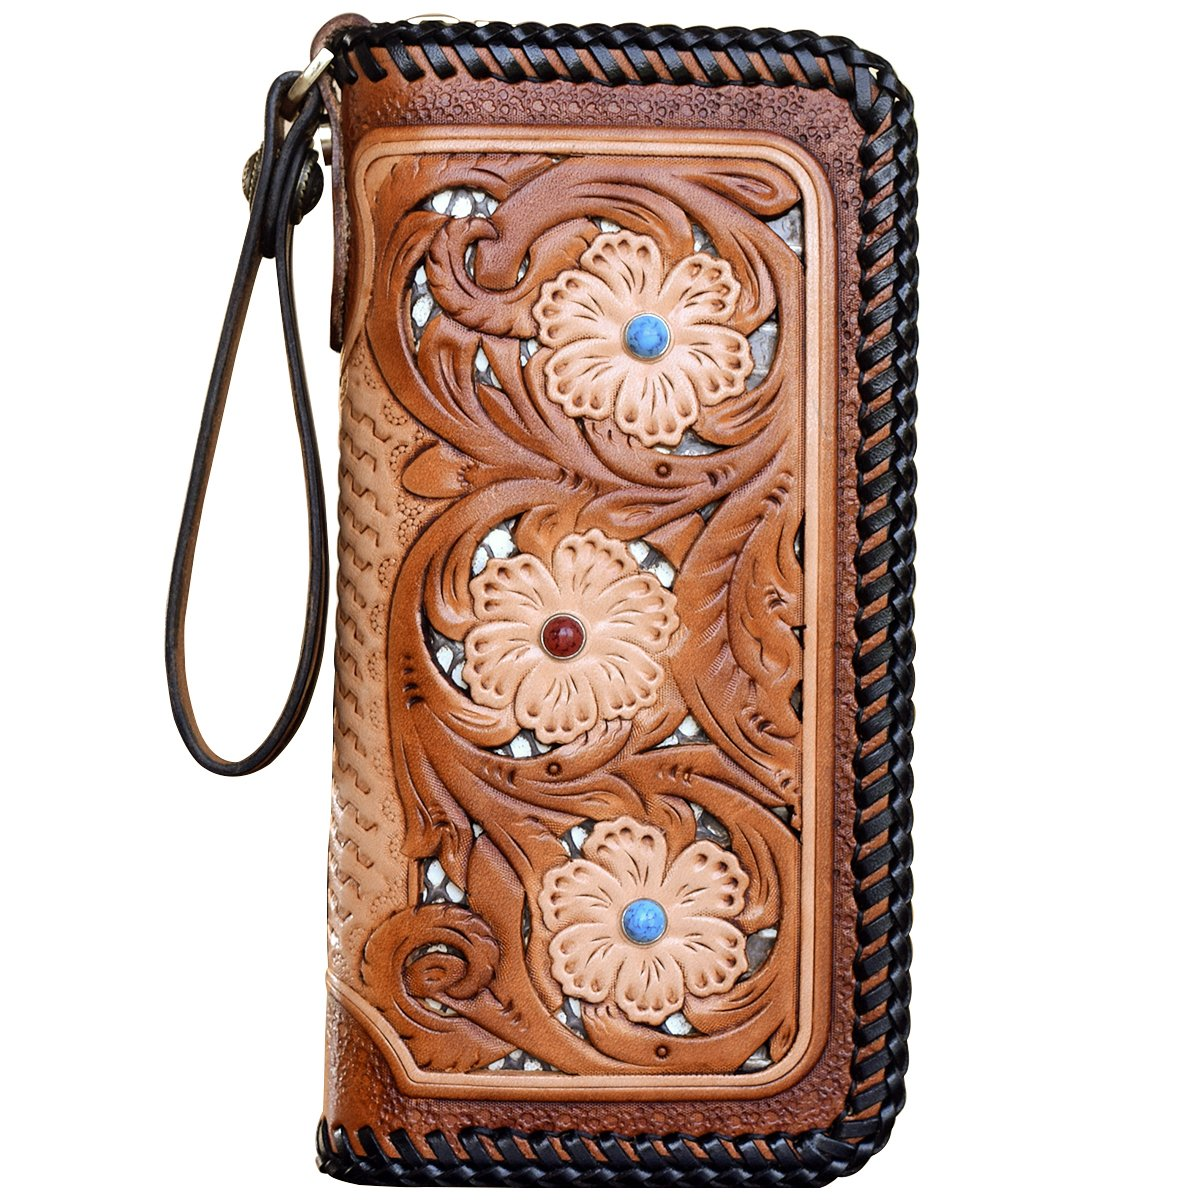 OLG.YAT Vegetable tanned leather Retro Genuine Leather Men's Wallets WL20LKDH4 by OLG.YAT